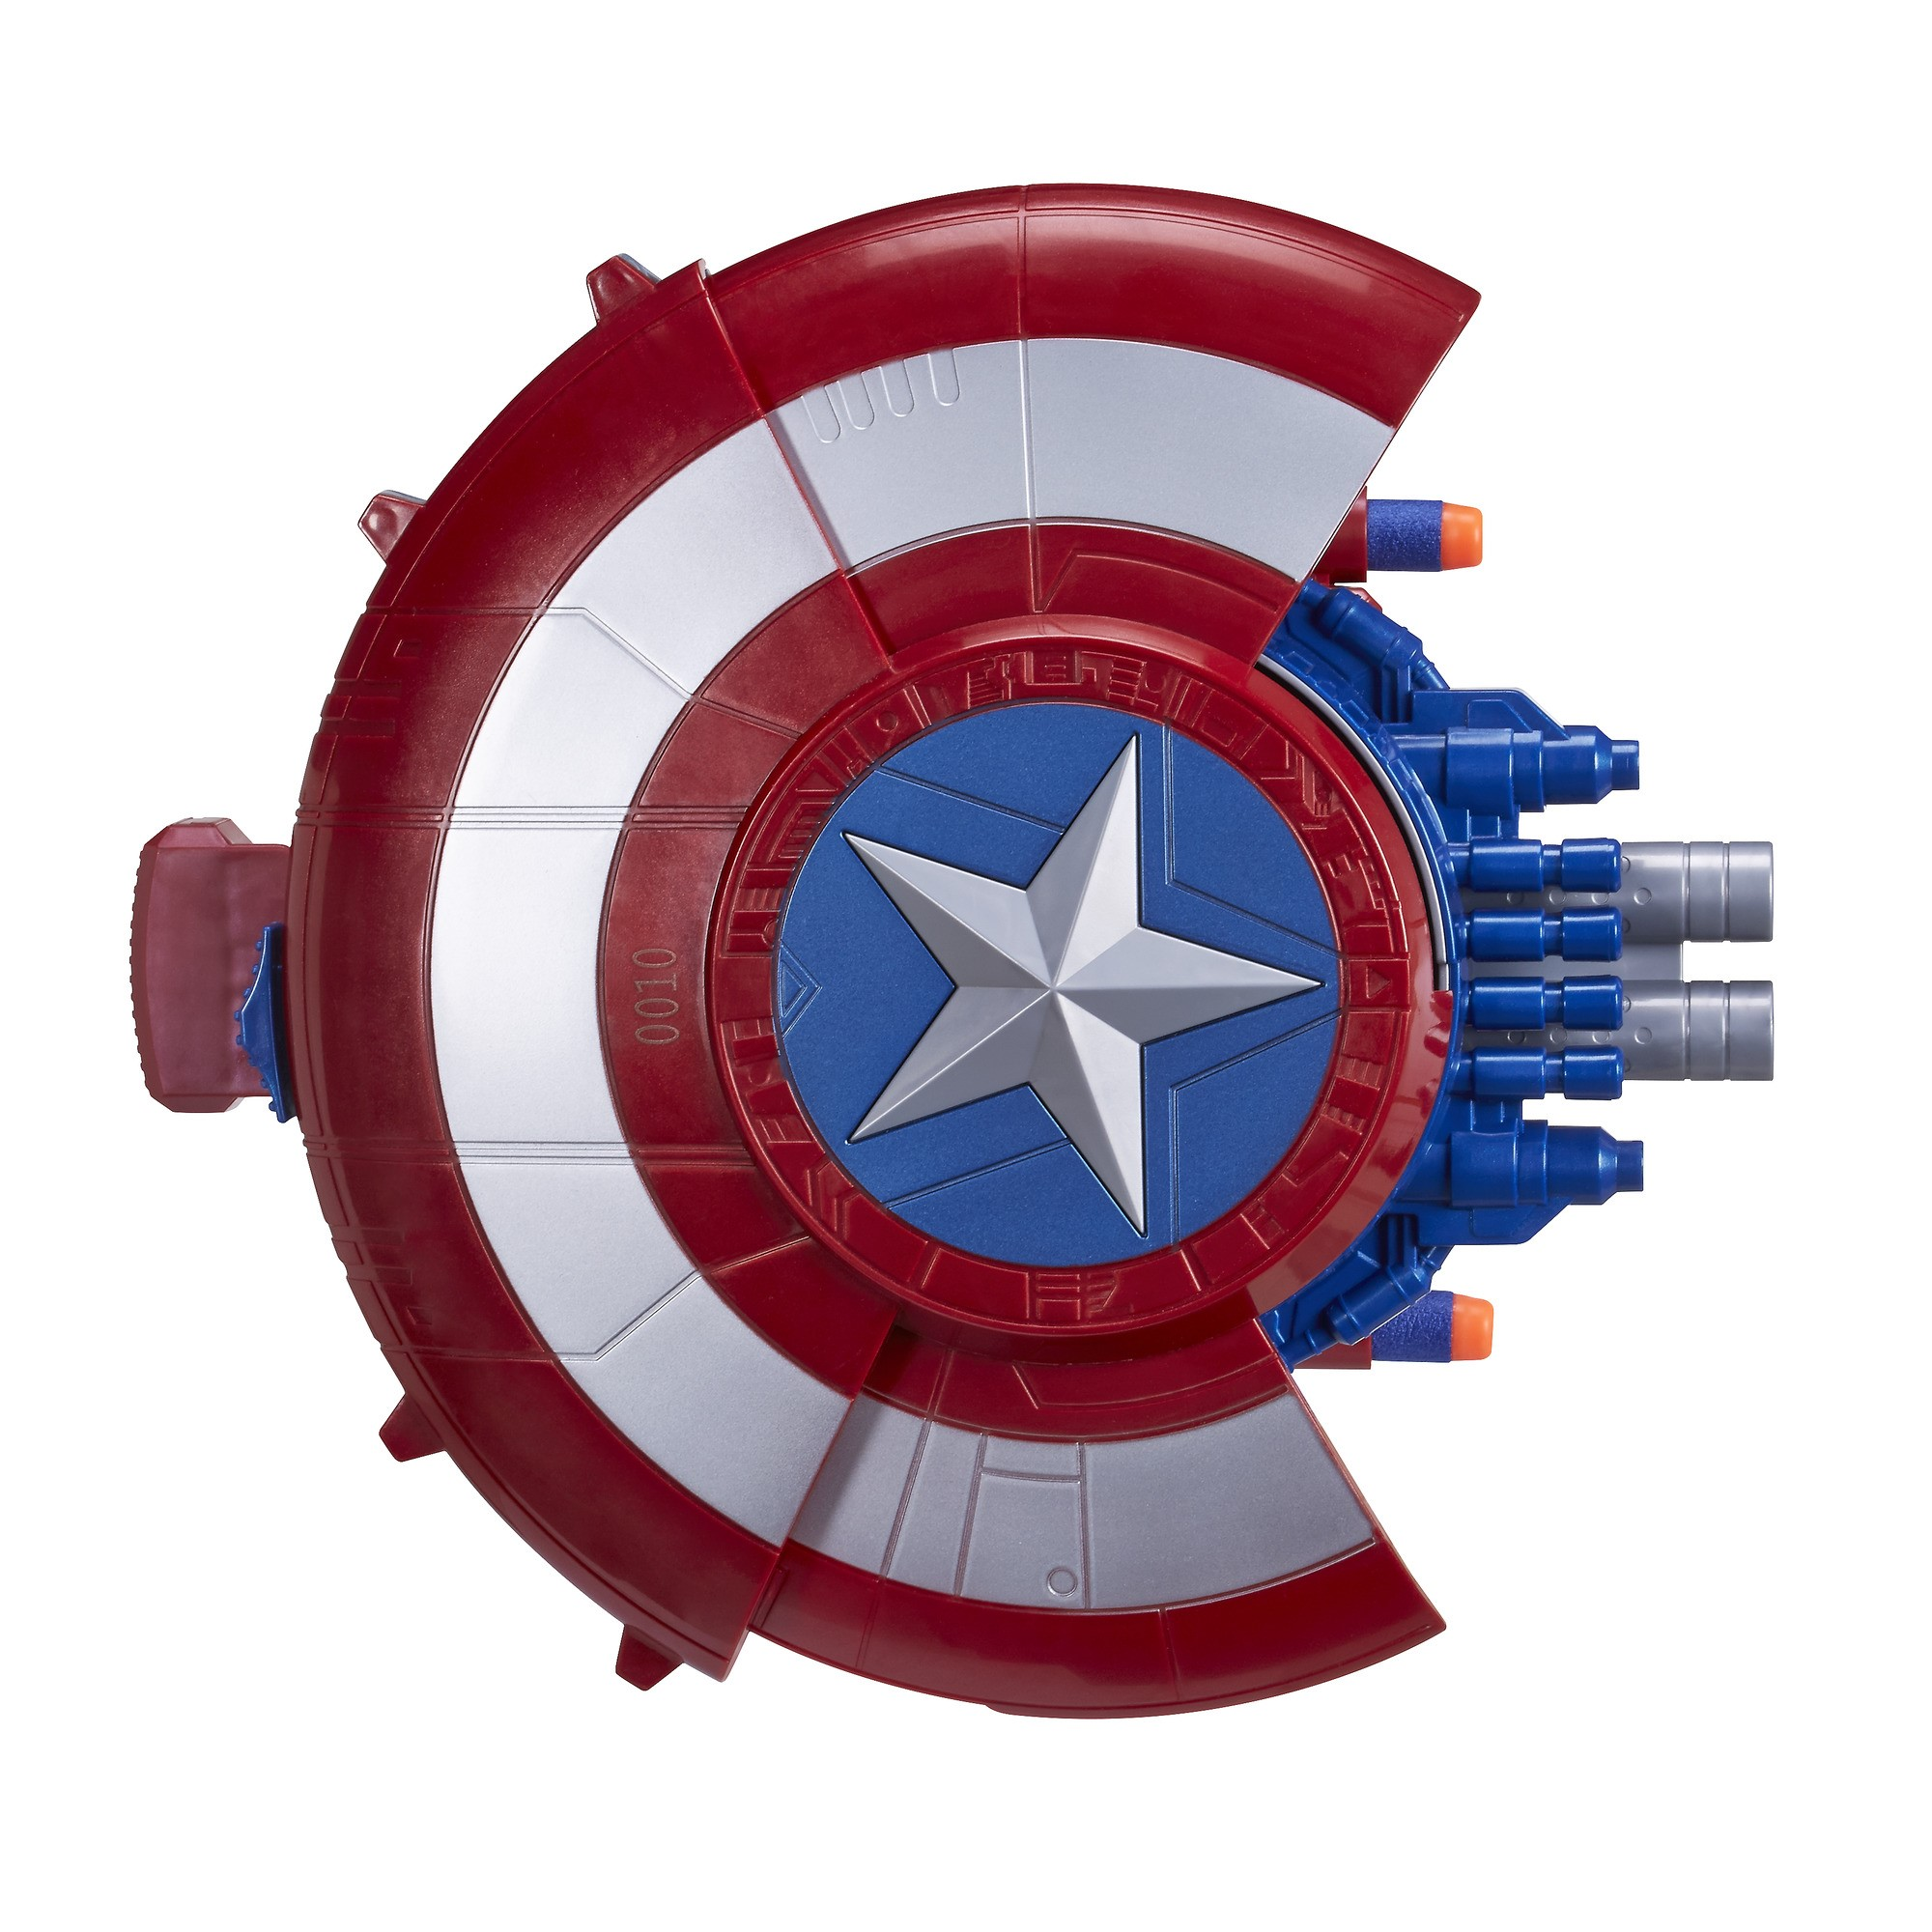 Marvel captain america blaster reveal shield